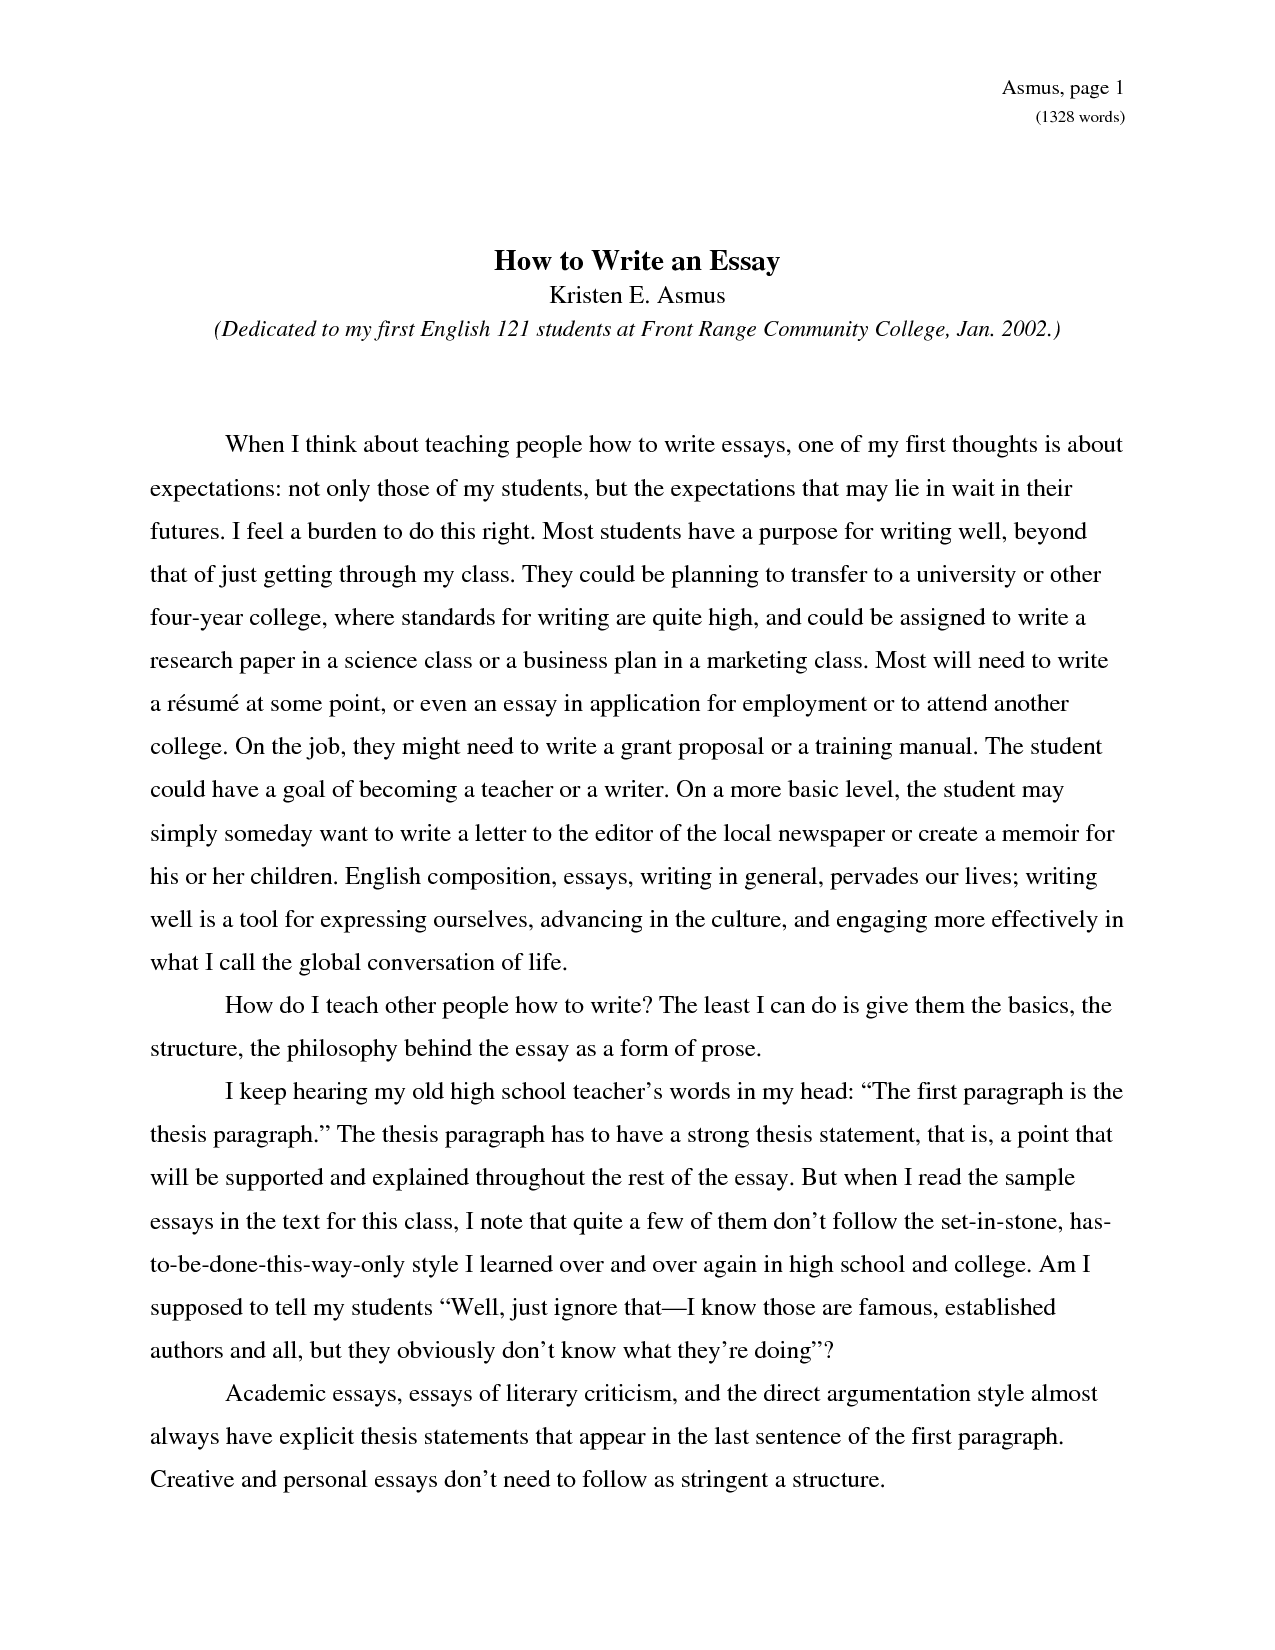 Example of one paper essay